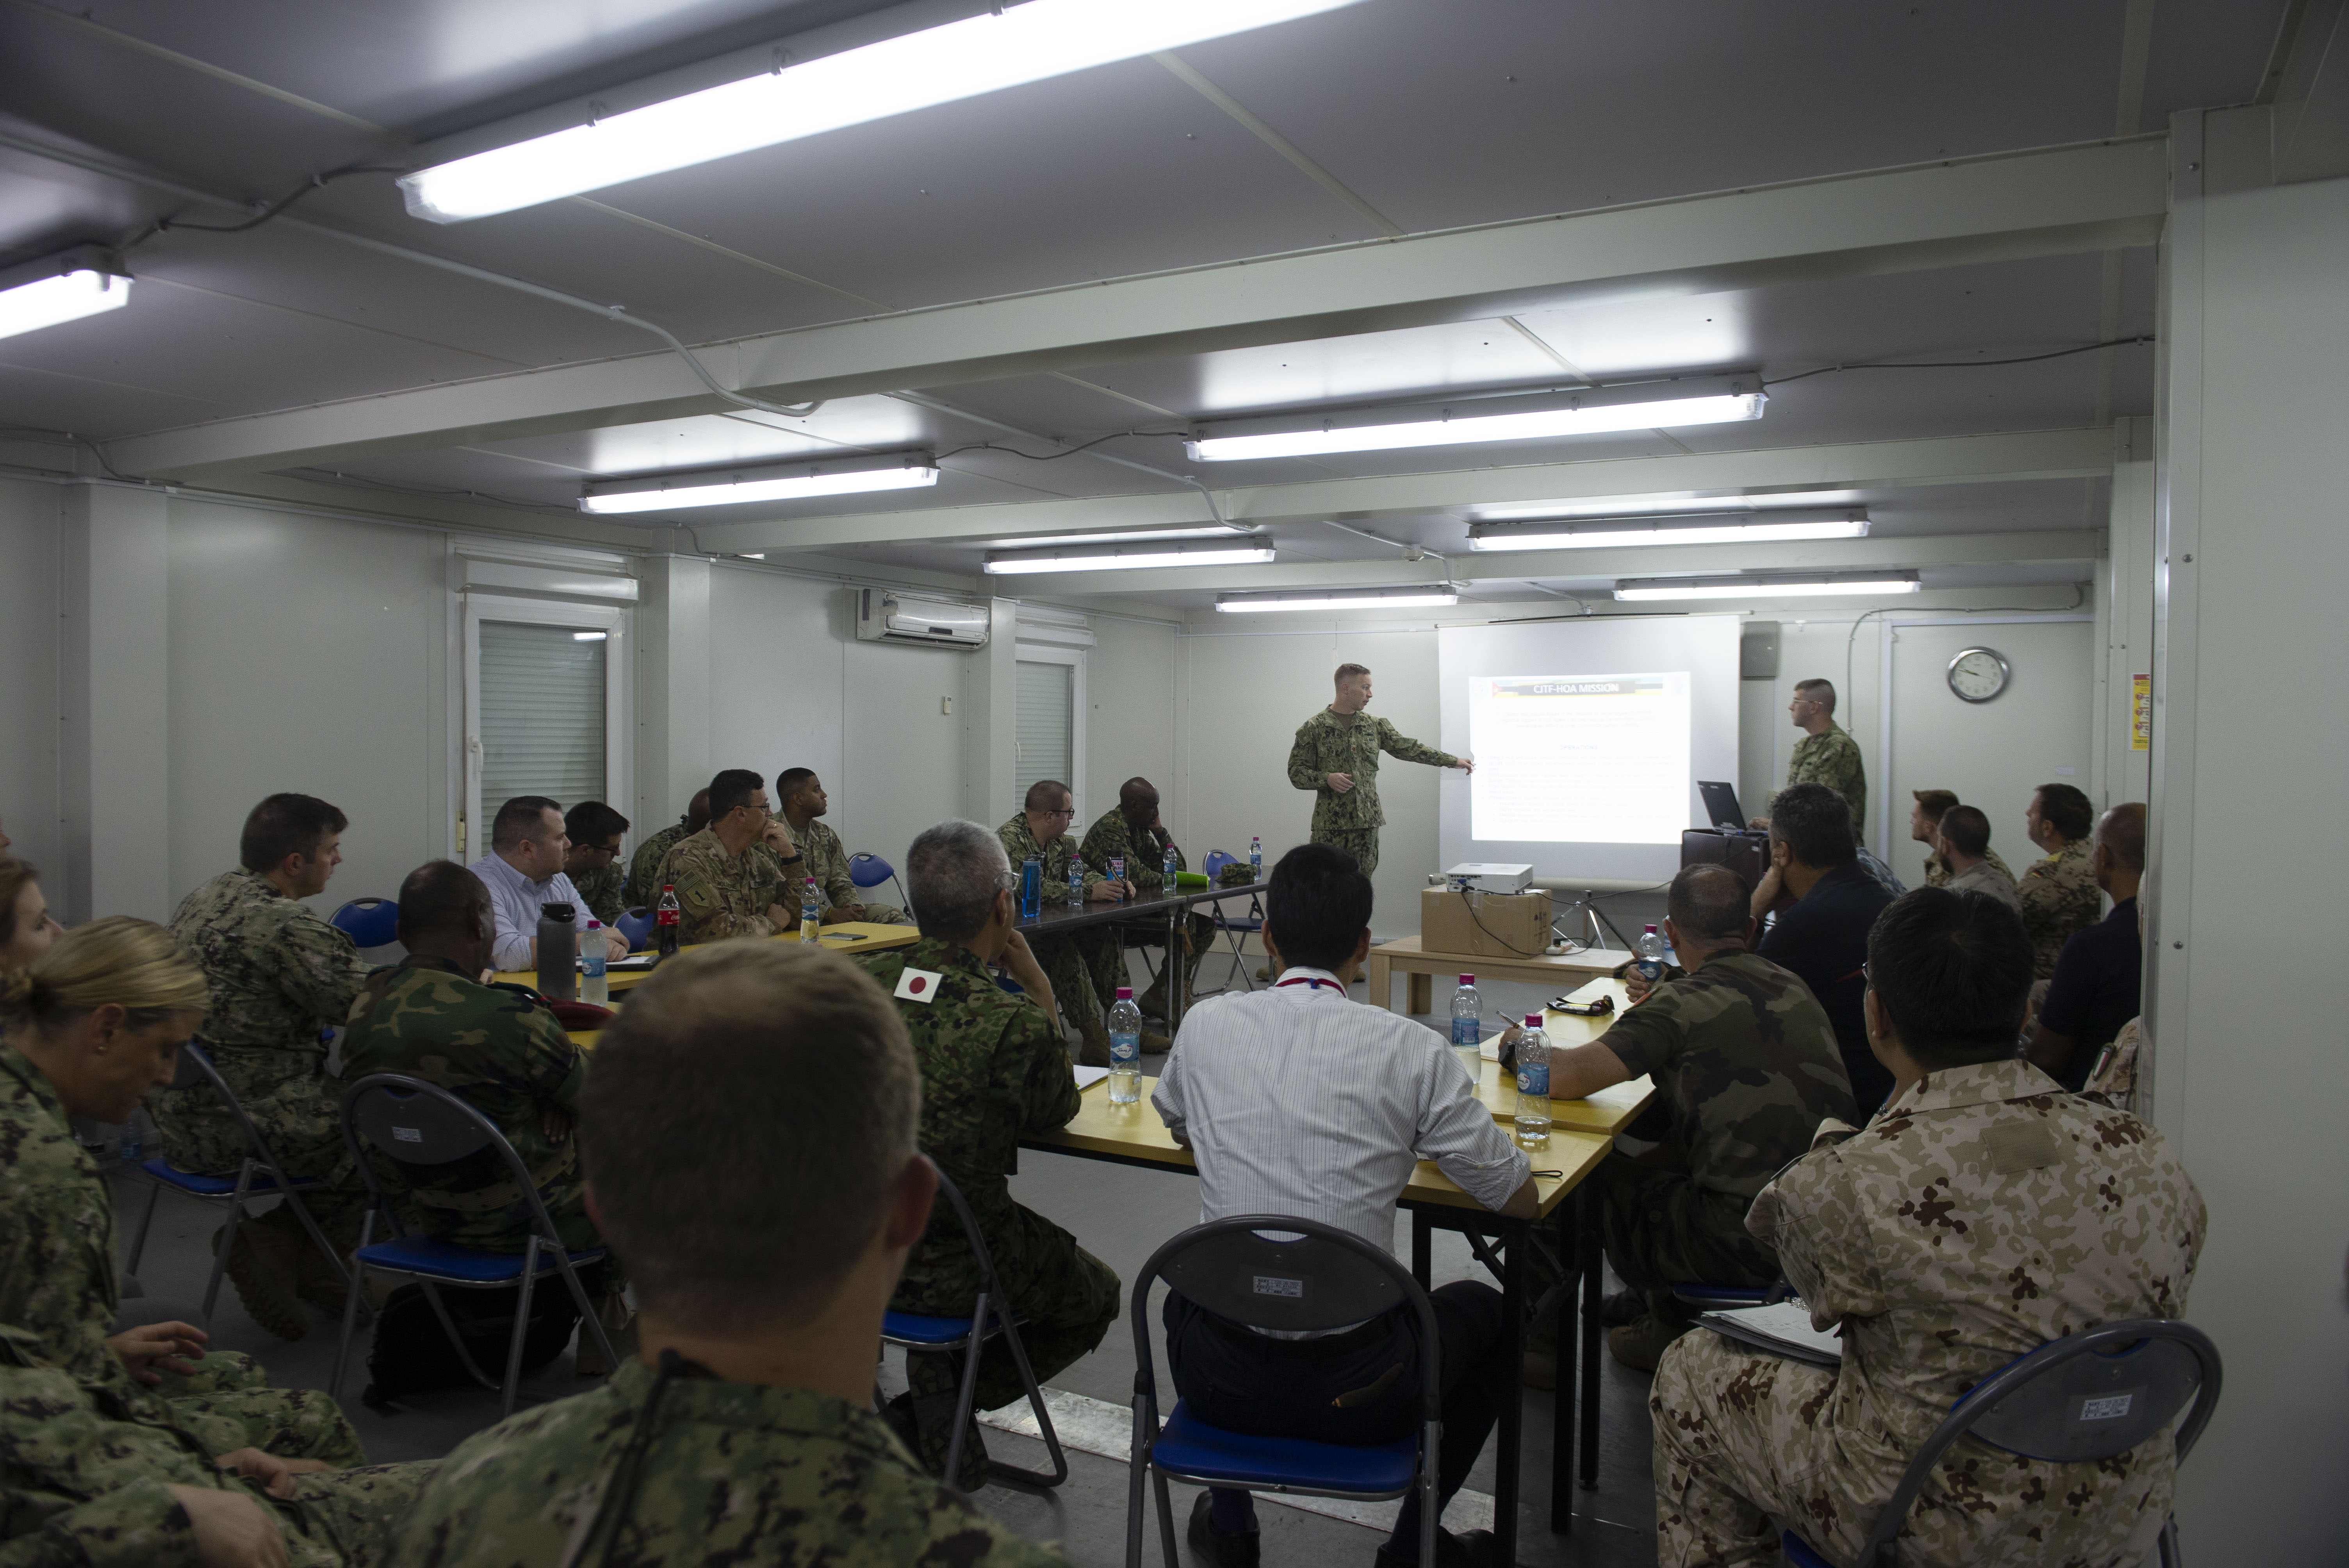 U.S. Navy Lt. Cmdr. Thomas Koehler, contingency branch chief assigned to Combined JointTask Force-Horn of Africa (CJTF-HOA), briefs U.S. noncombatant evacuation operation (NEO) rules of engagement during a Japanese-led NEO exercise in Djibouti, Africa, Oct. 1, 2019. A NEO is the military assisted departure of civilian noncombatants and nonessential military personnel. (U.S. Air Force photo by Senior Airman Gabrielle Spalding)